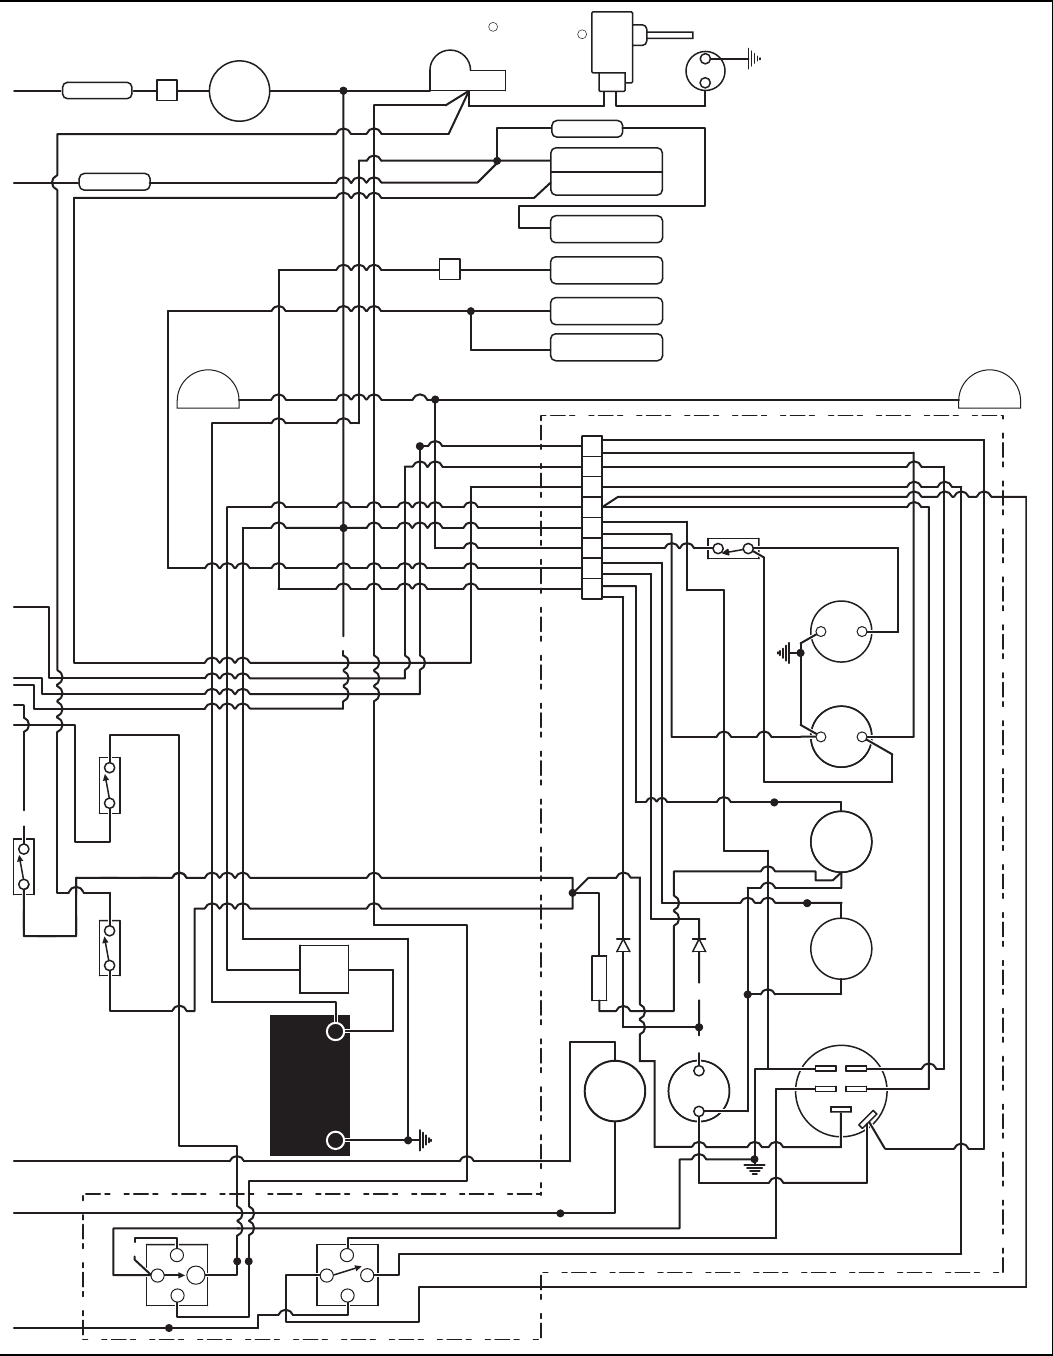 on a 2003 olds alero fuse box diagram a free printable wiring diagrams